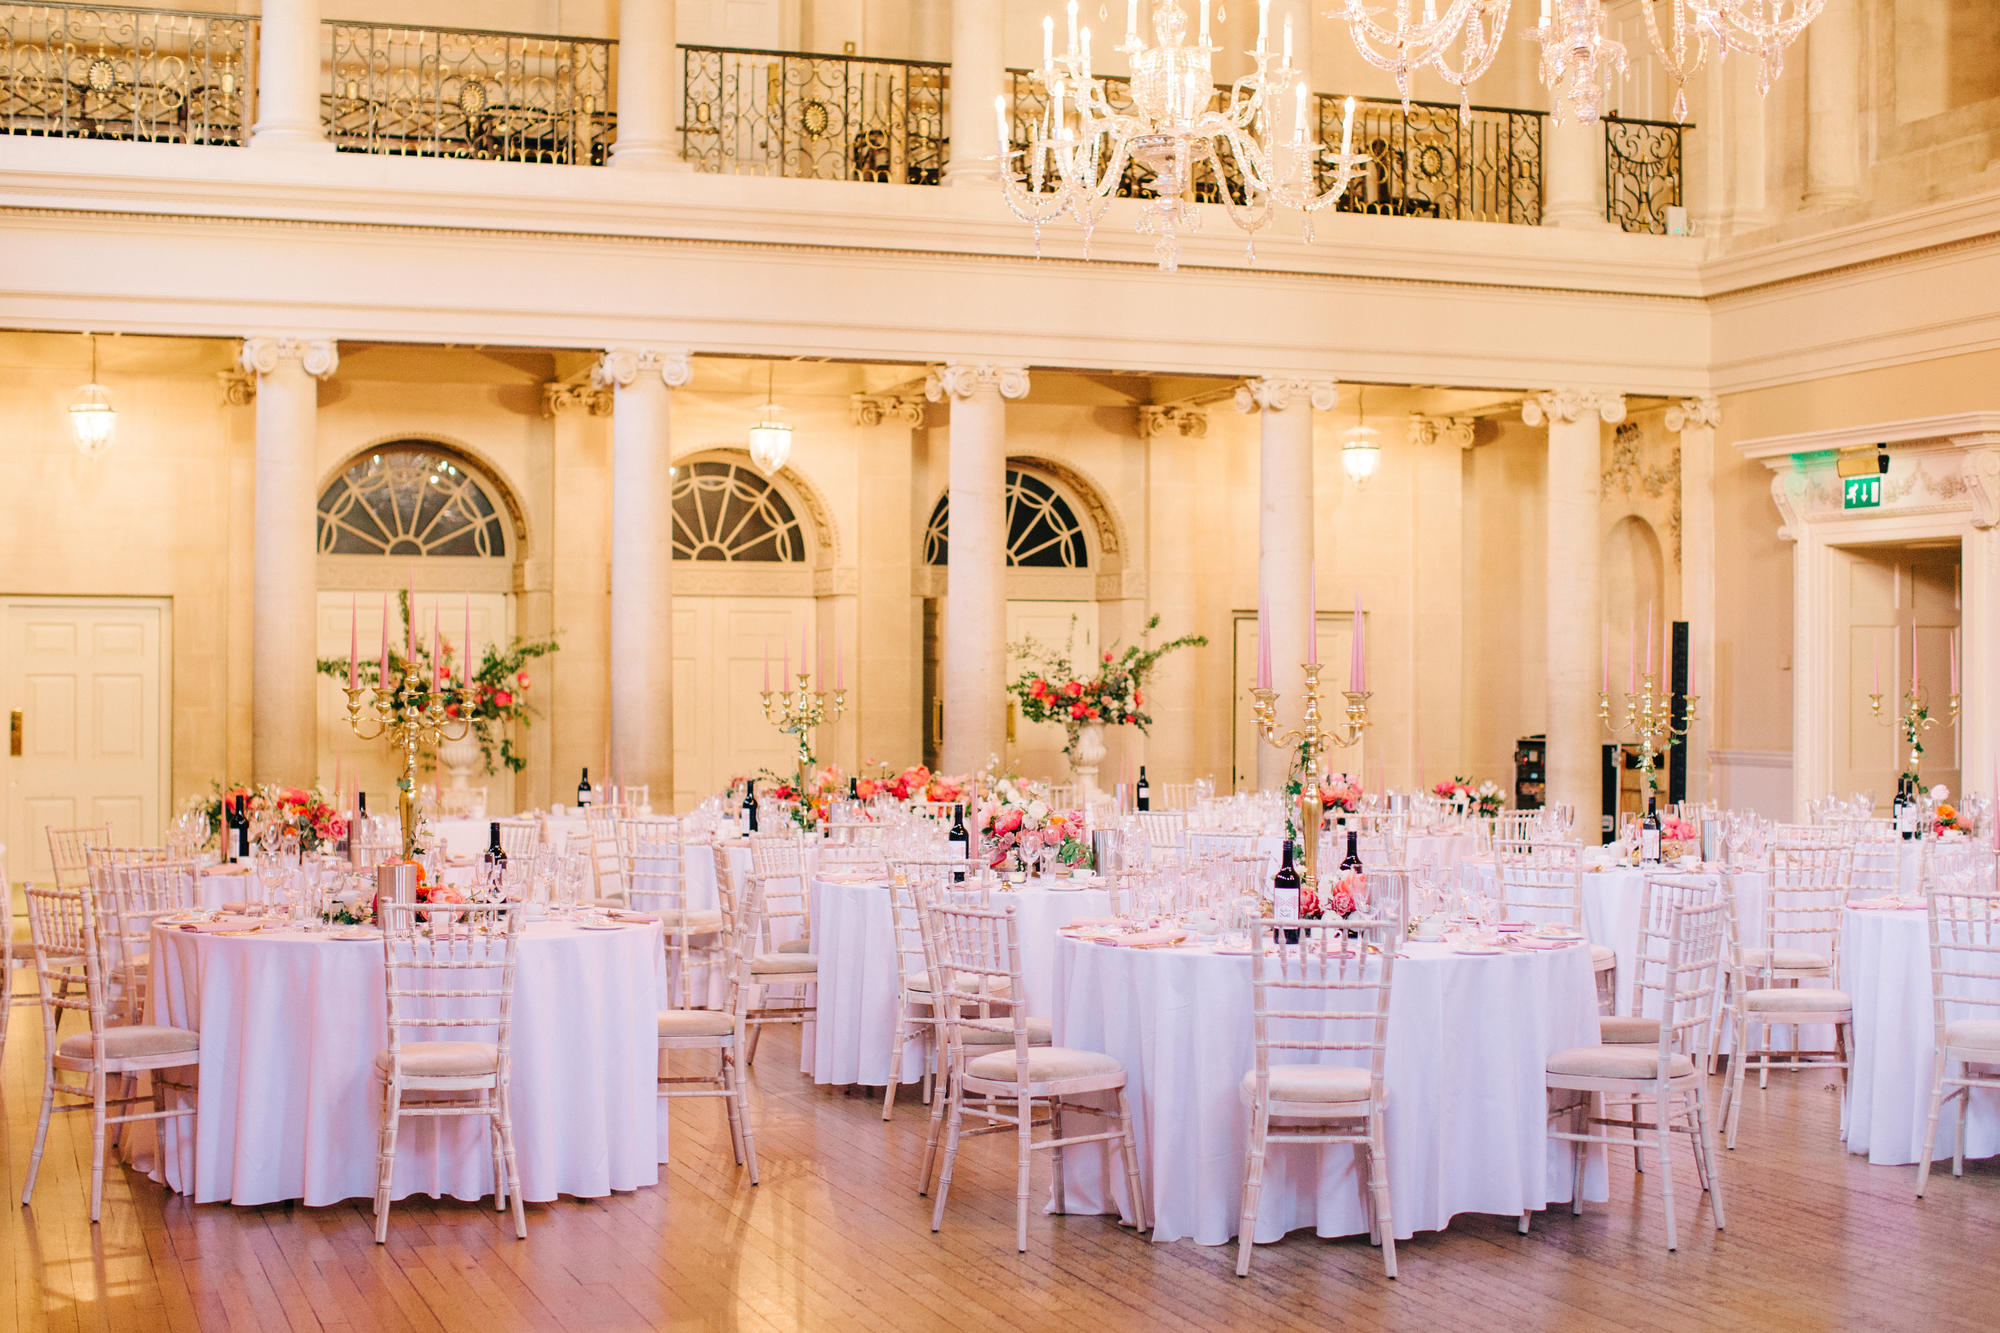 Image: Reception in The Tea Room, M&J photography